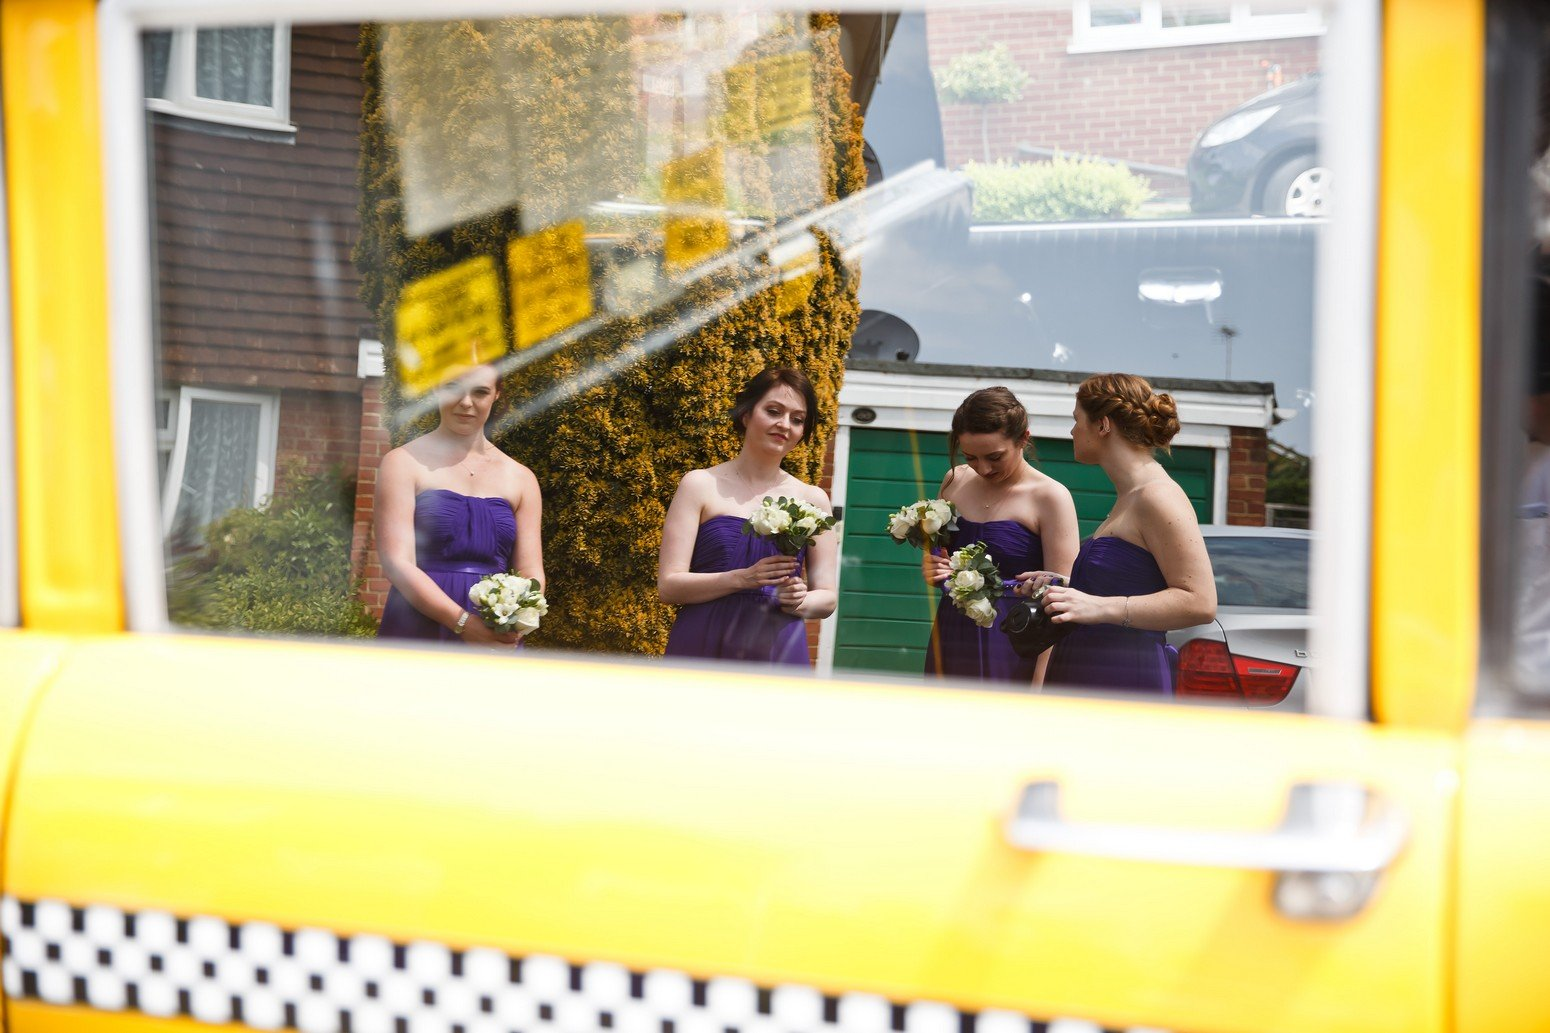 Spread Eagle Hotel Wedding photography new york yellow cab taxi